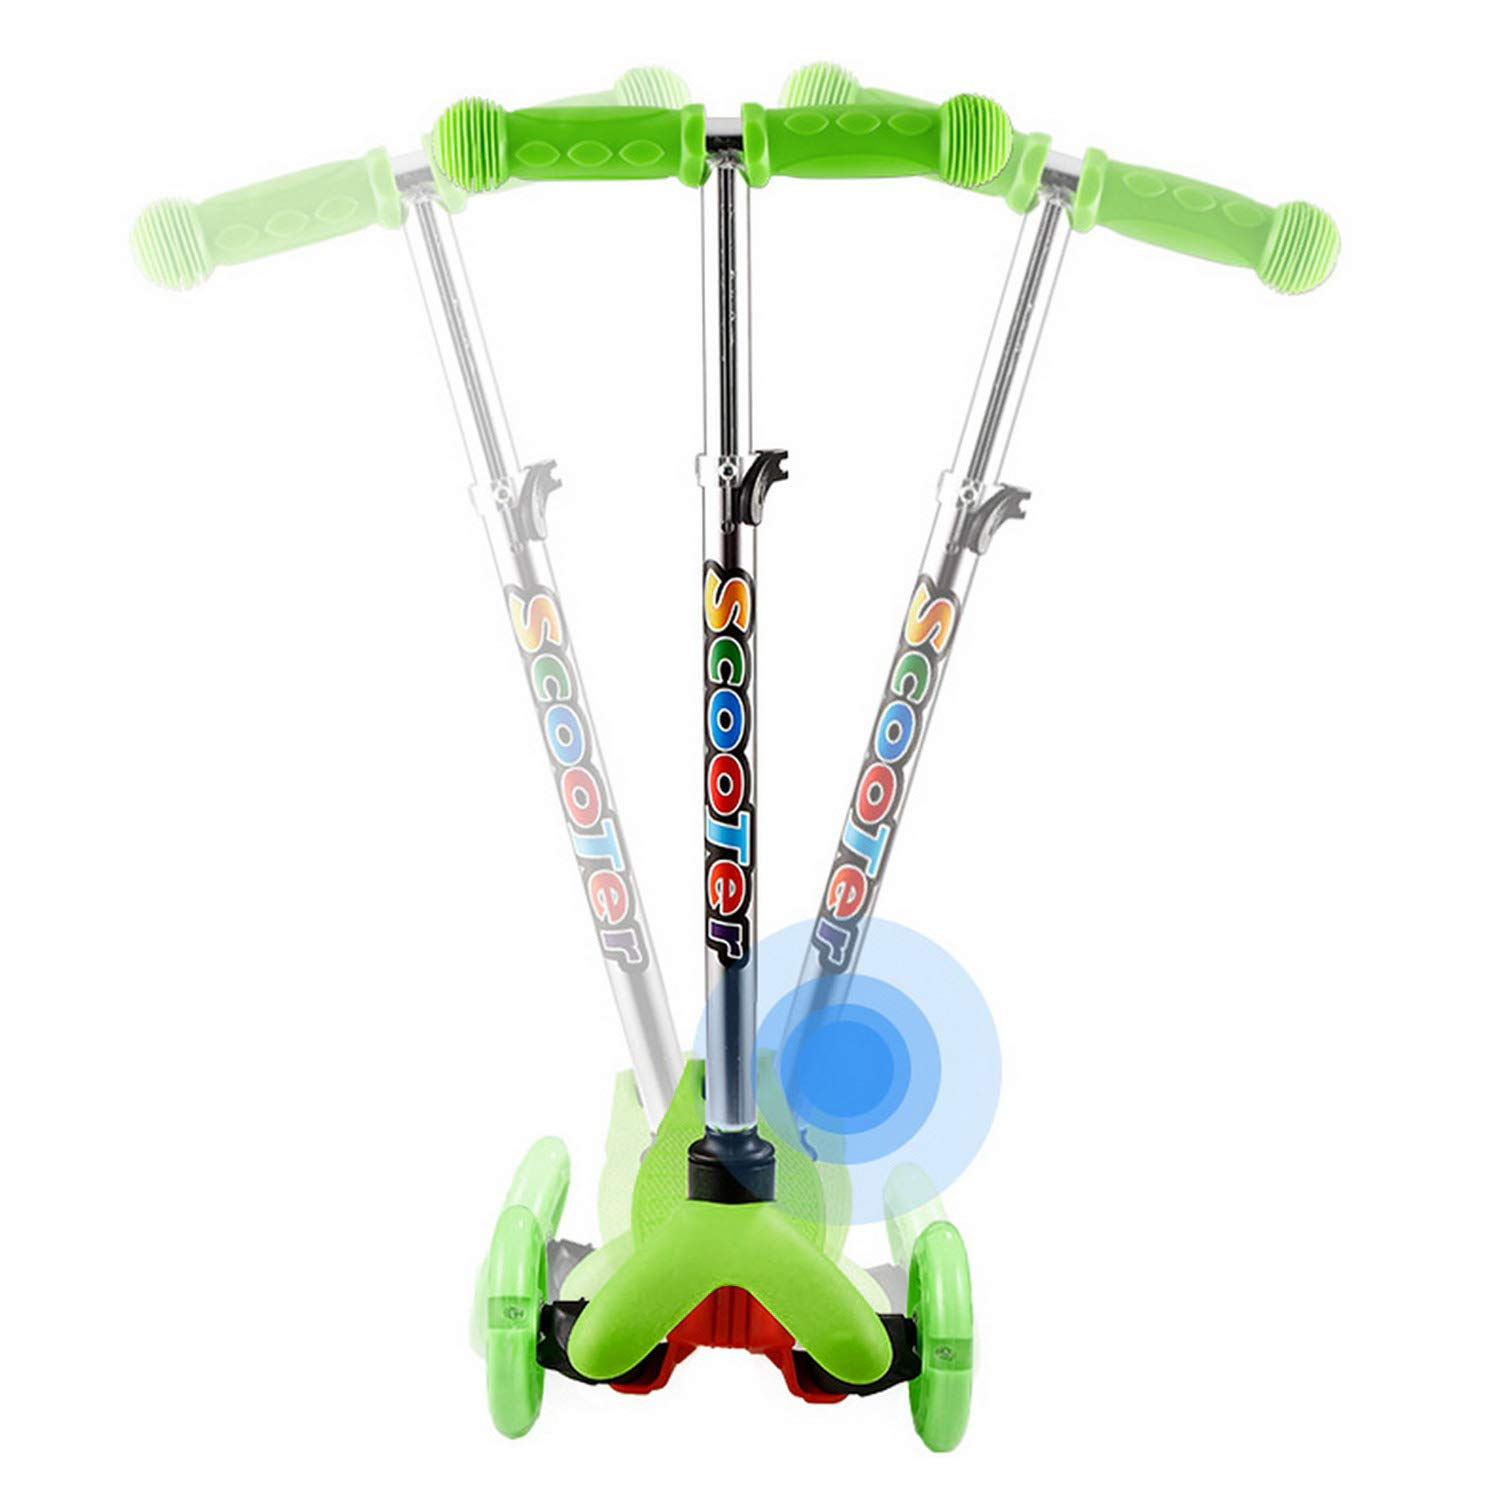 Lululy Kids Scooter Children 3 Wheel Adjustable Height Kick Scooter with Flashing PU Wheels for Kids Children Aged 2-8